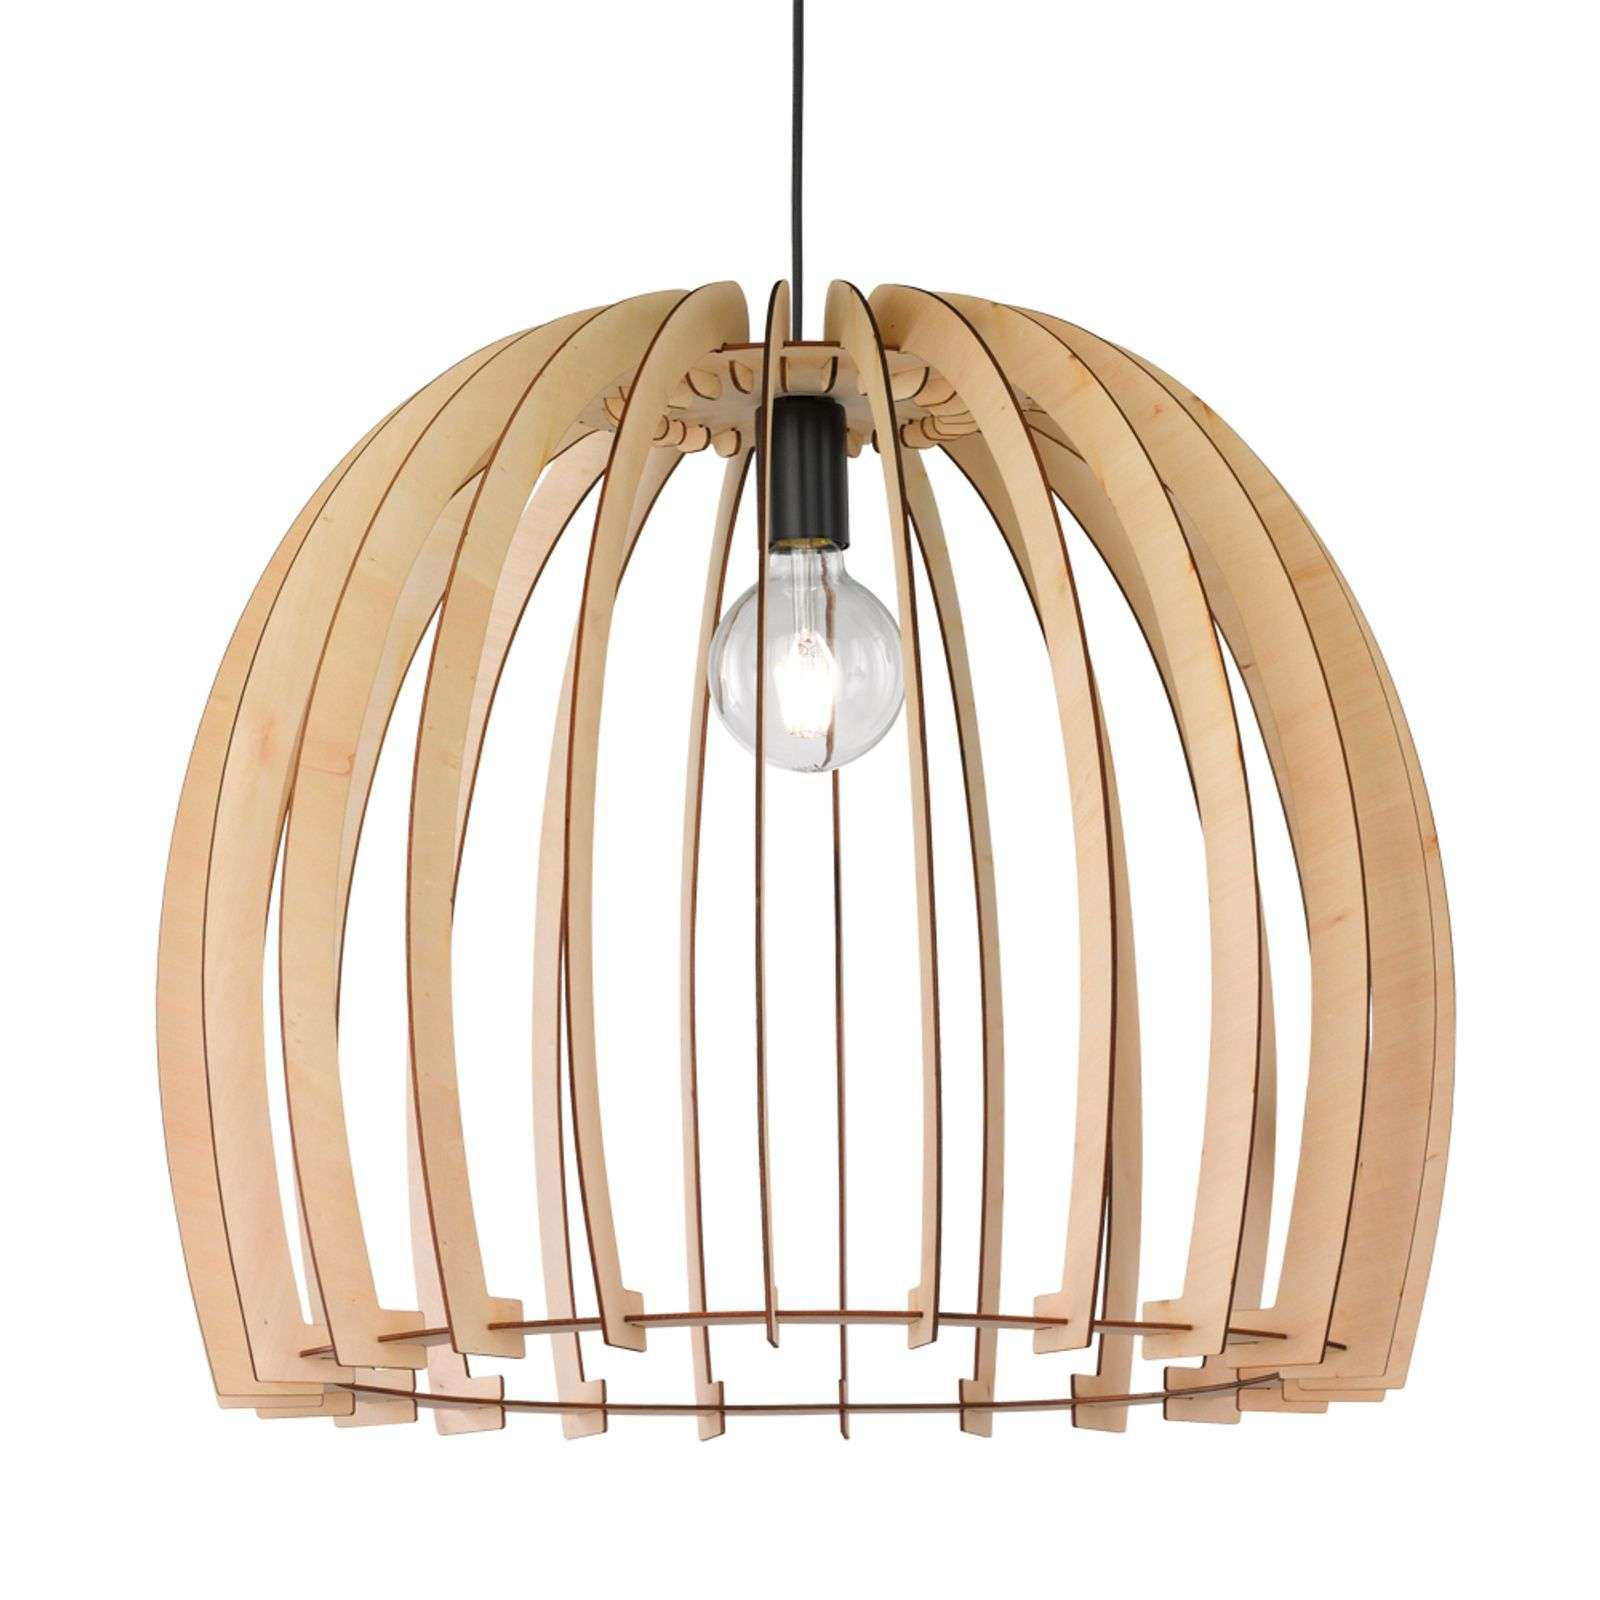 Élégante suspension en bois Wood